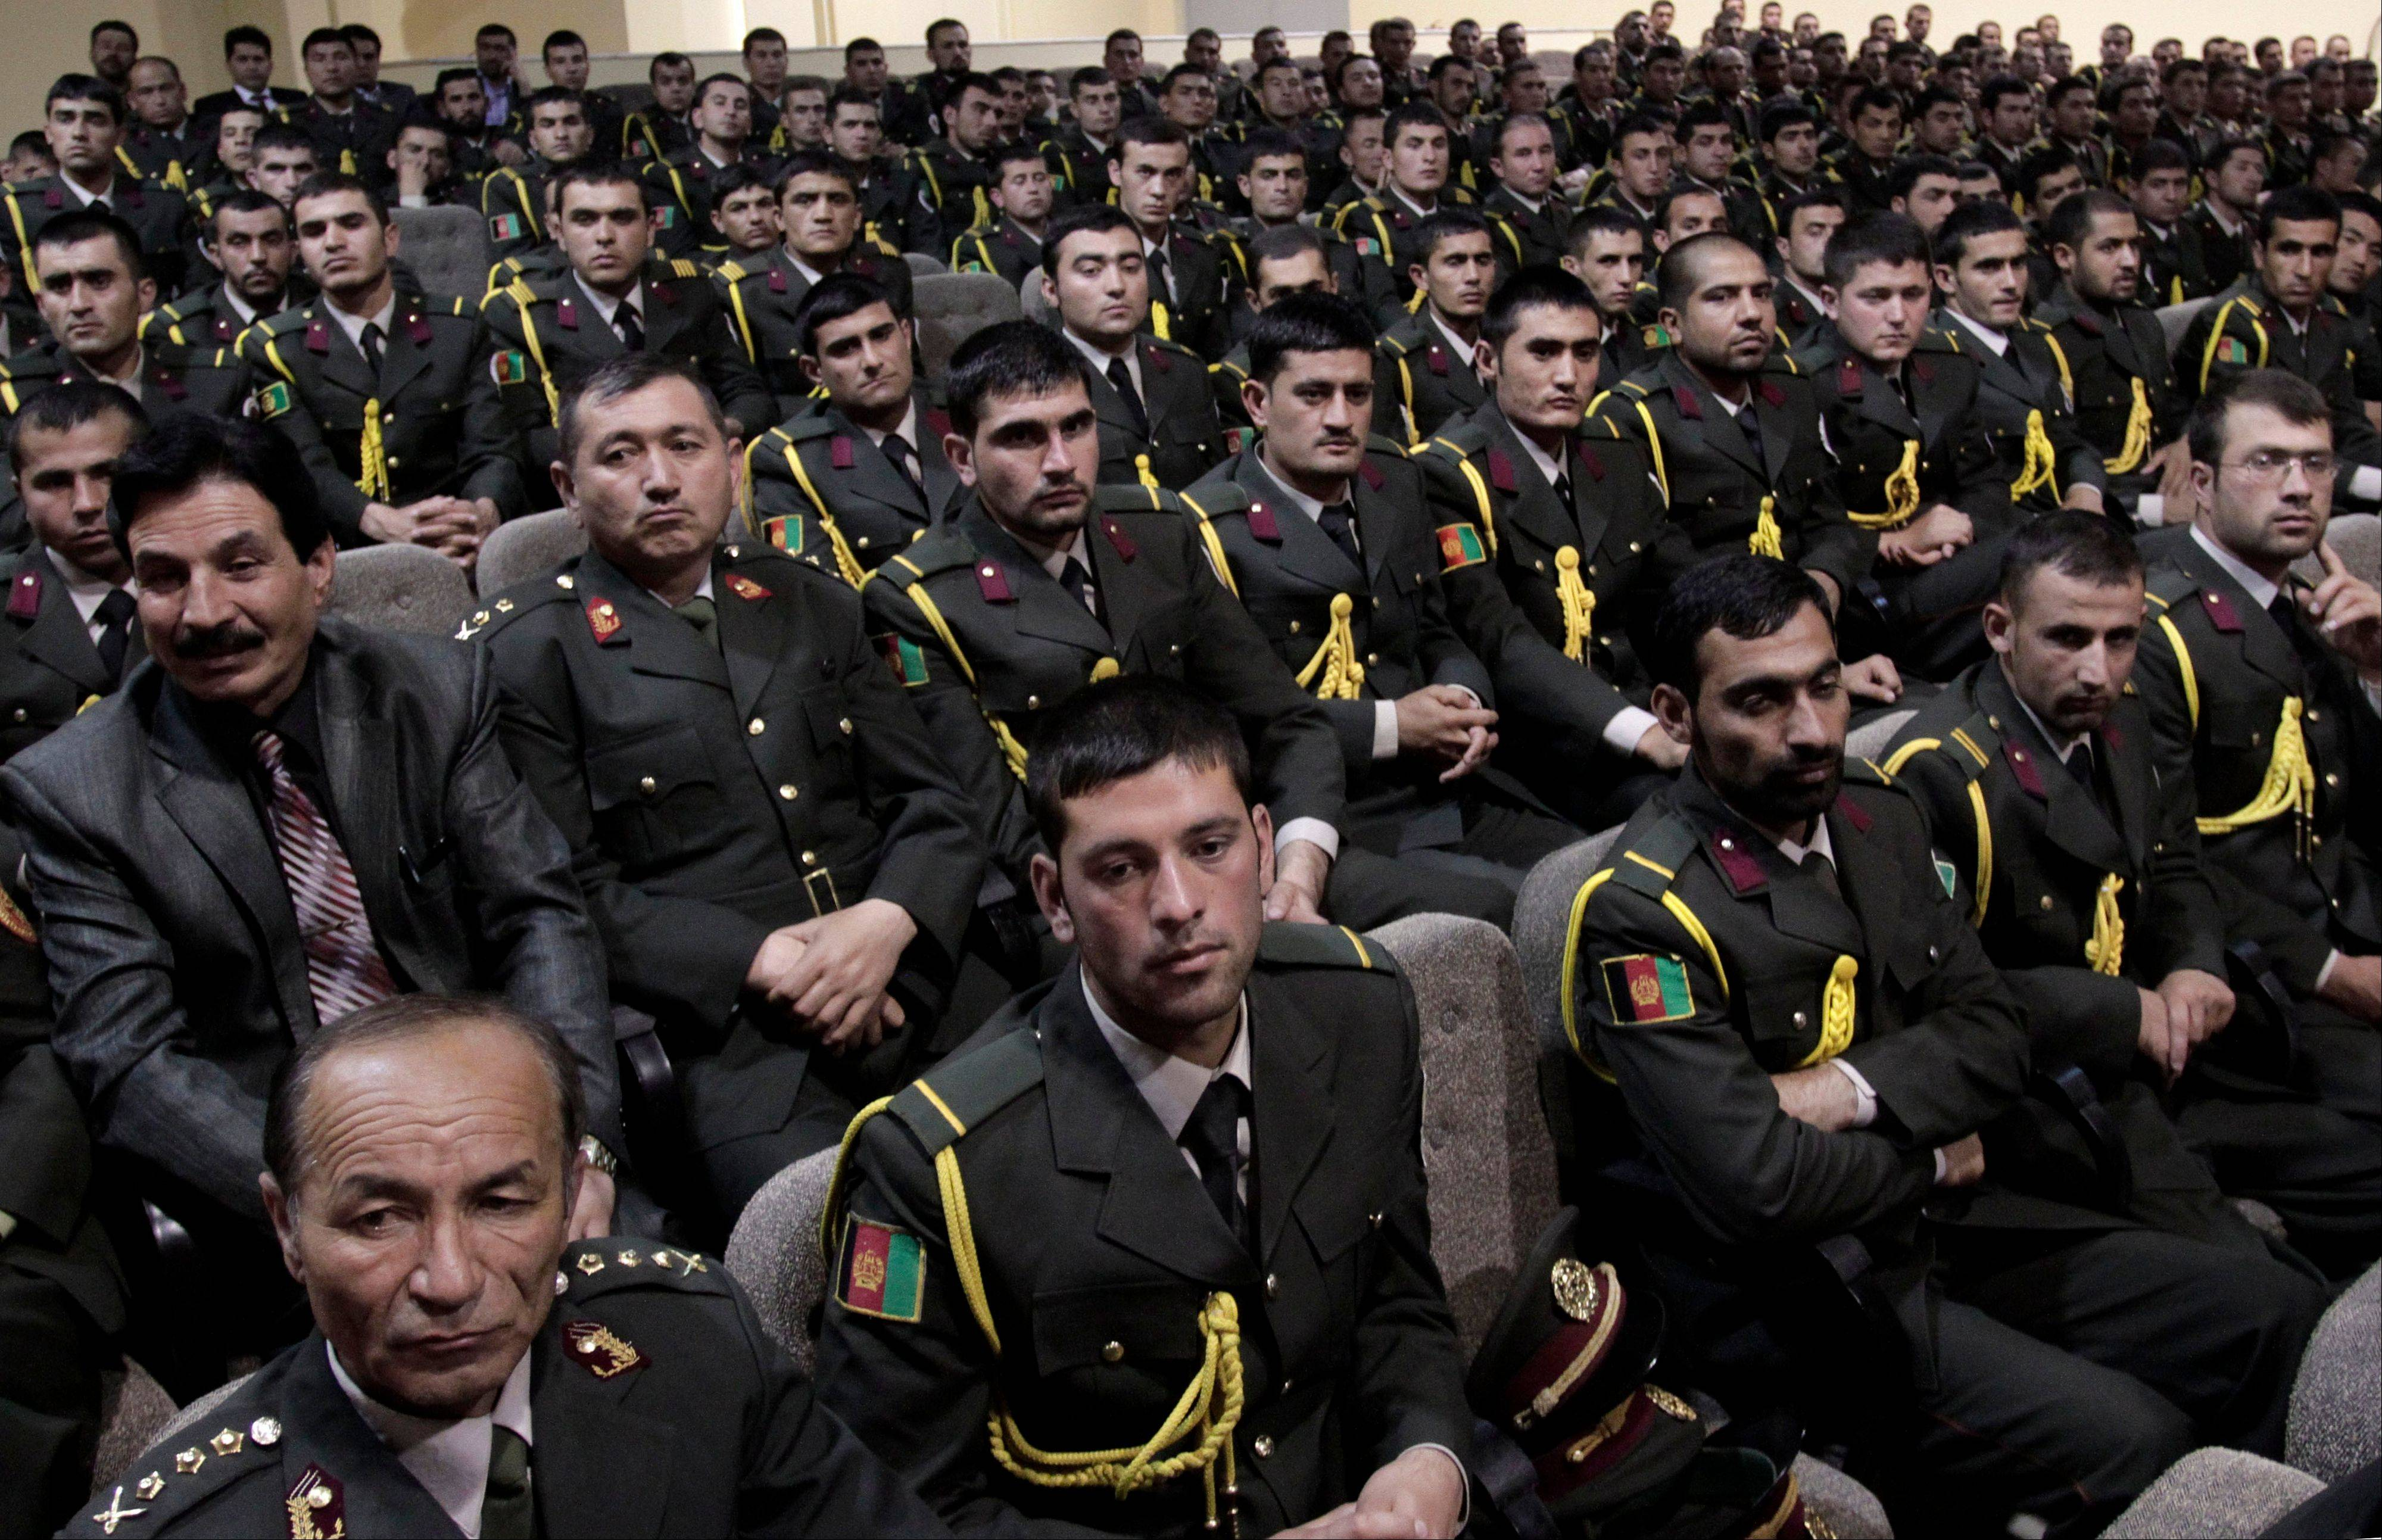 Afghan security officials attend a handover ceremony at a military academy on the outskirts of Kabul, Afghanistan, Tuesday, June 18, 2013. Afghan forces have taken over the lead from the U.S.-led NATO coalition for security nationwide, President Hamid Karzai announced Tuesday in a significant milestone in the 12-year war.